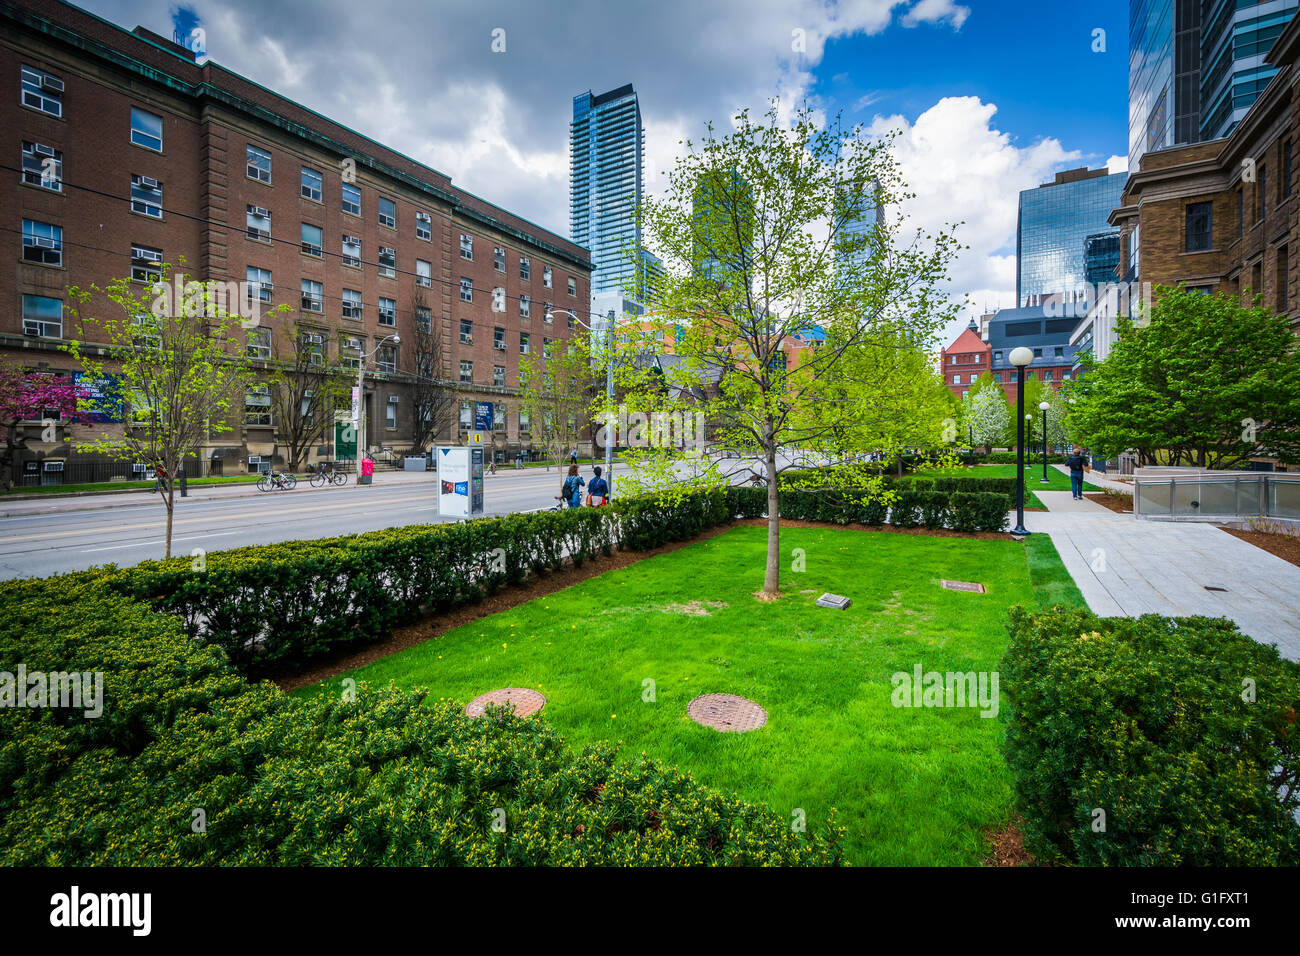 Gardens and buildings in the Discovery District, of Toronto, Ontario. - Stock Image